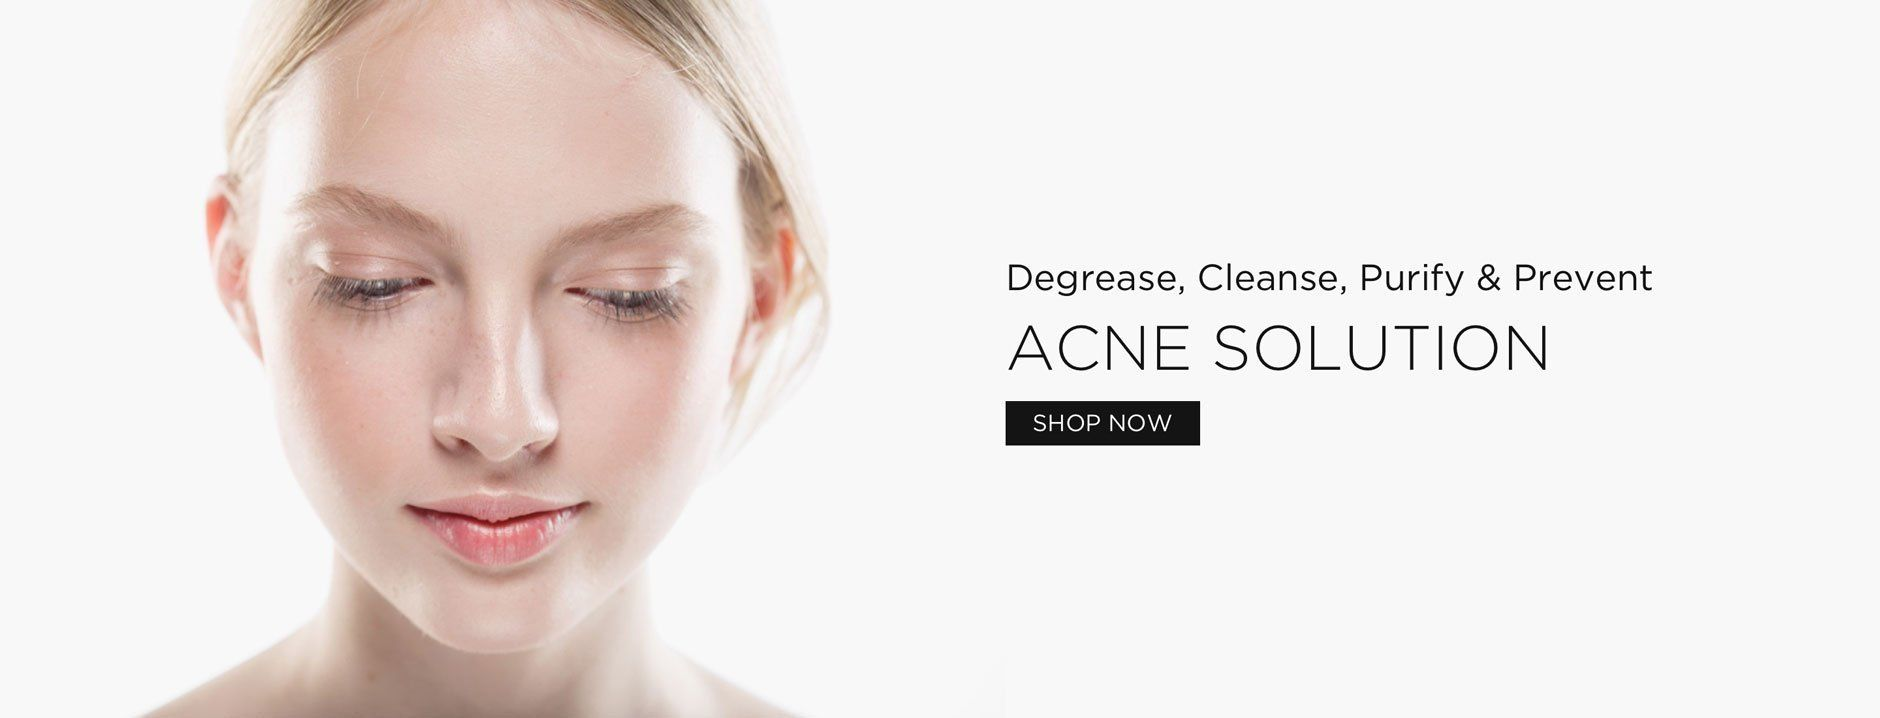 Acne Solution